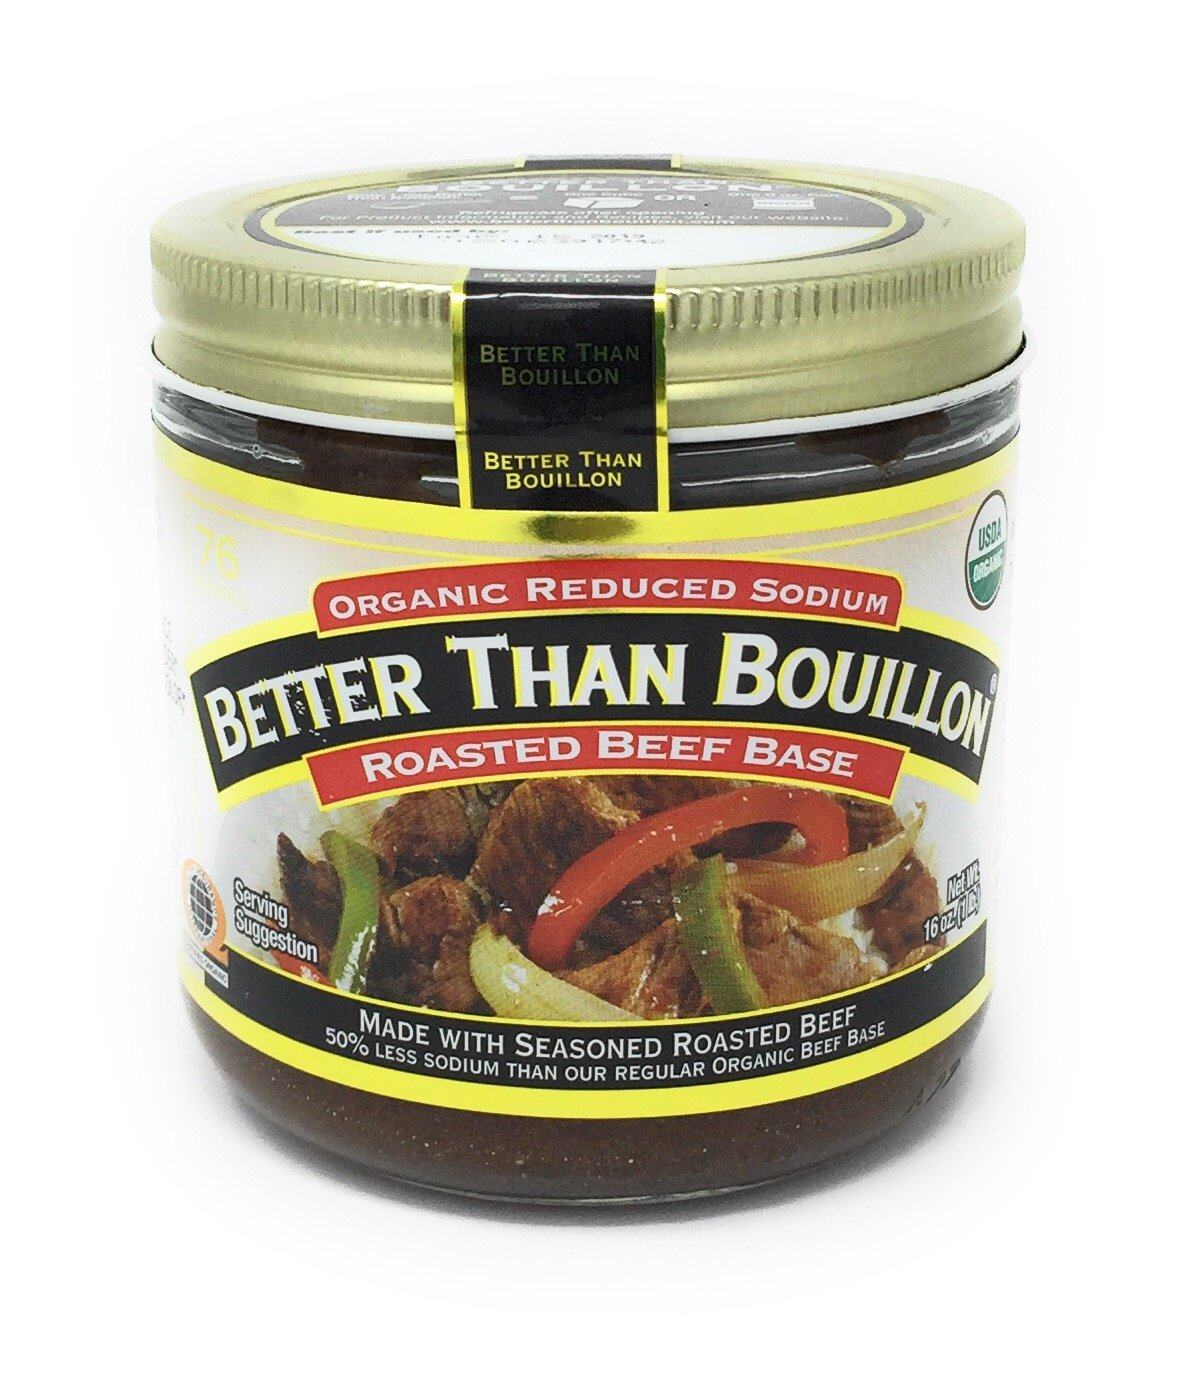 Better Than Bouillon Organic Roasted Beef Base,16 Ounce Reduced Sodium